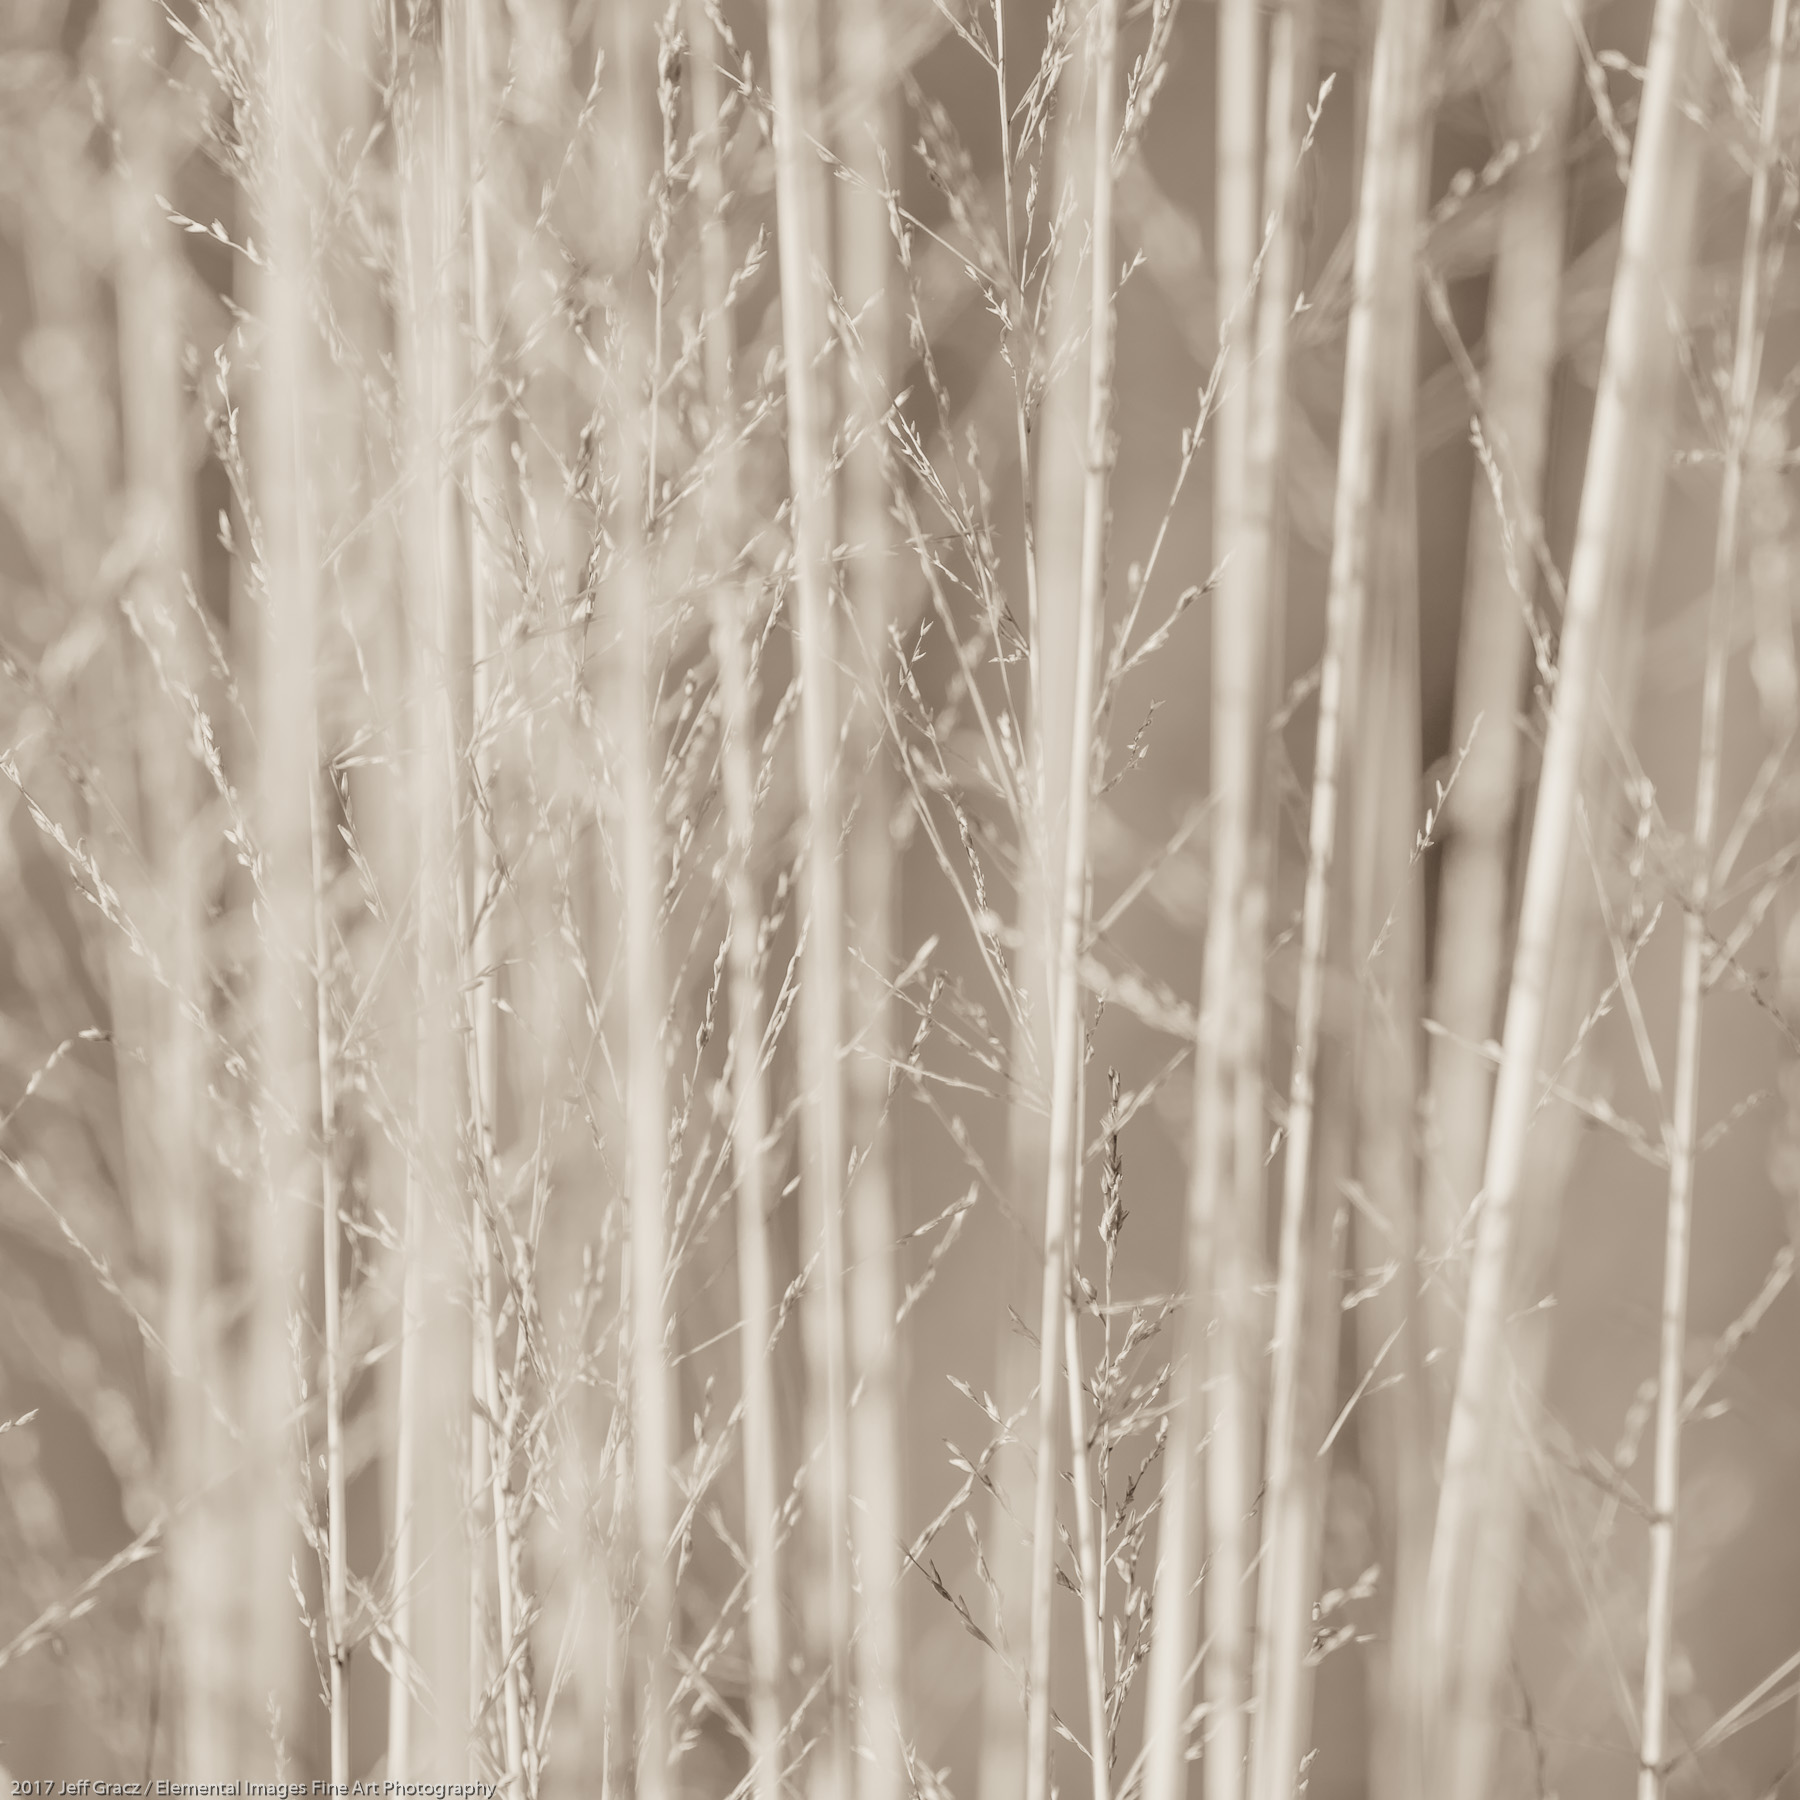 Grasses #152 | Silverton | OR | USA - © 2017 Jeff Gracz / Elemental Images Fine Art Photography - All Rights Reserved Worldwide